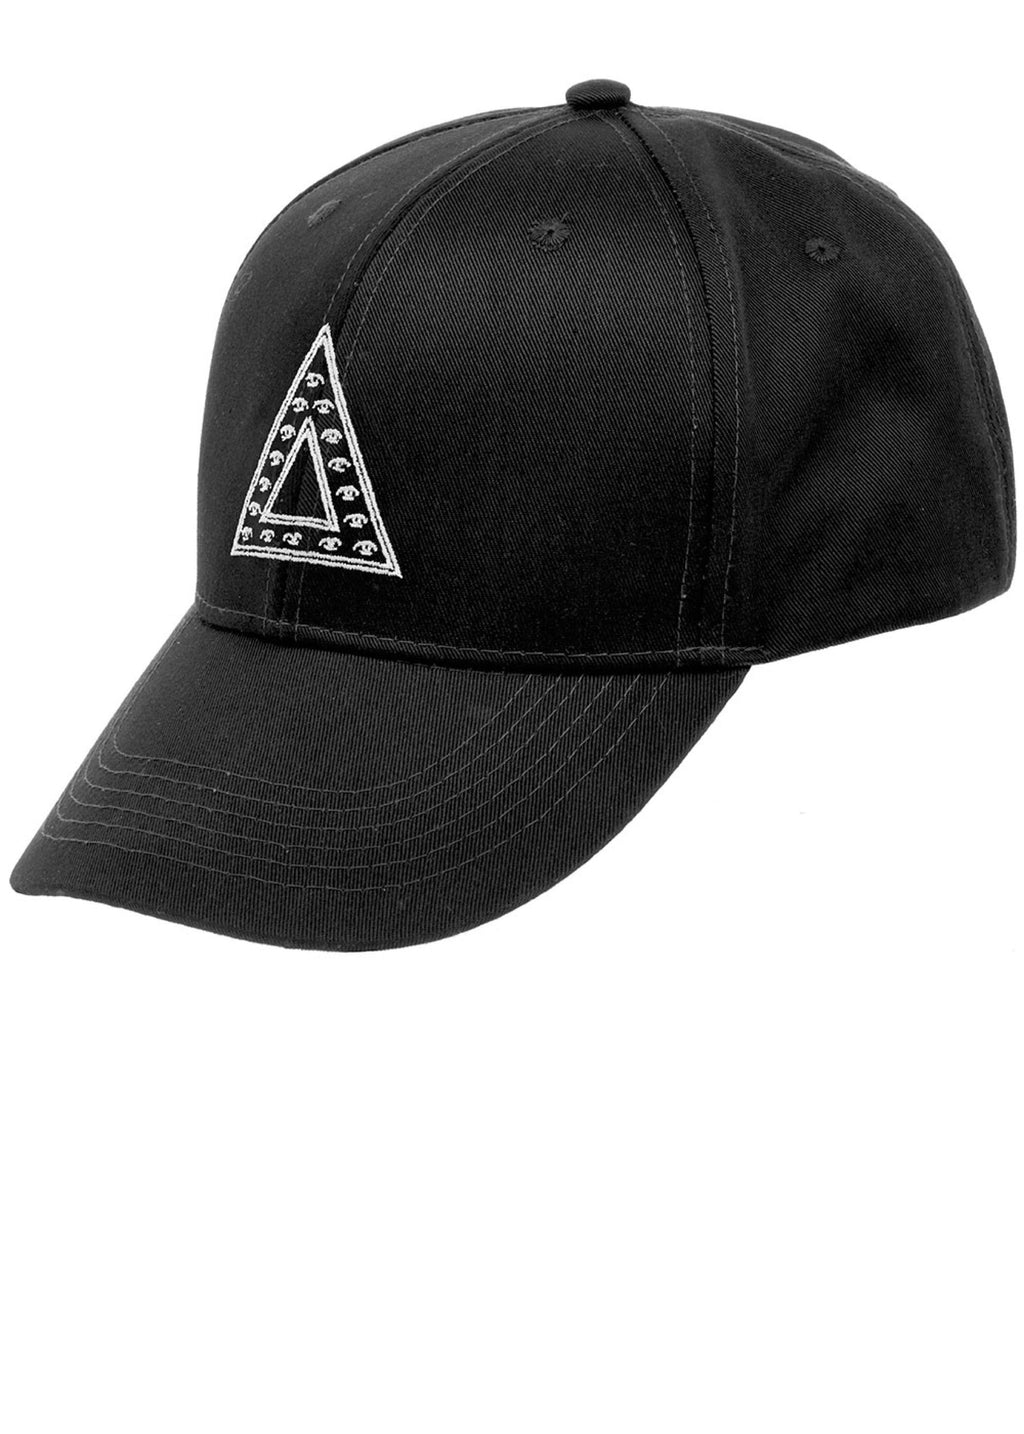 Boys Black Baseball Cap- Front